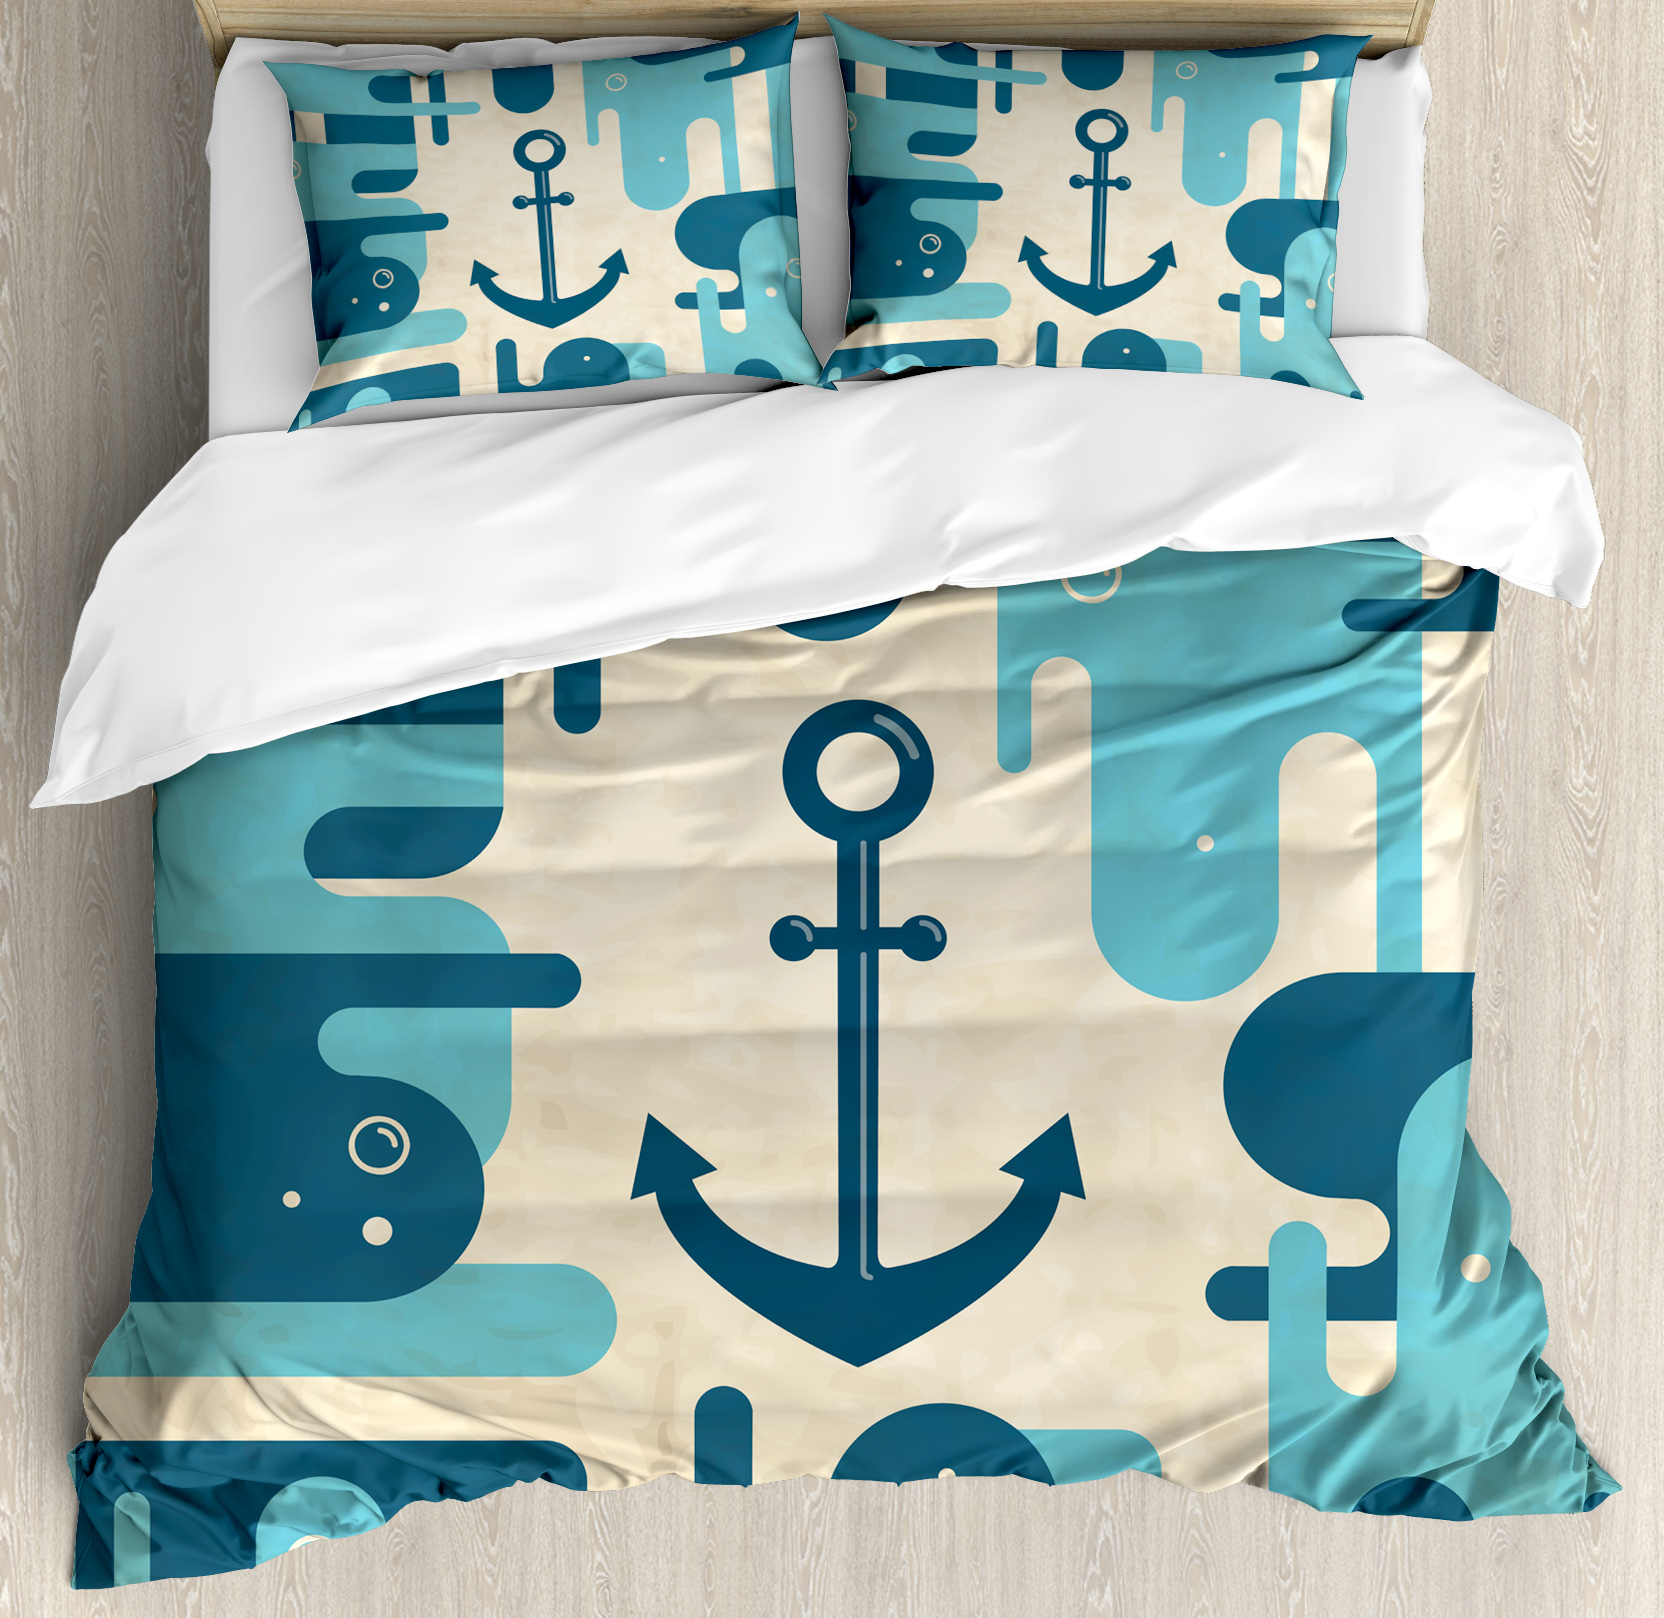 Anchor Queen Size Duvet Cover Set, Nautical Sea Inspired Abstract Design with Bubble Like Shapes Retro, Decorative 3 Piece Bedding Set with 2 Pillow Shams, Cream Pale Blue Dark Blue, by Ambesonne